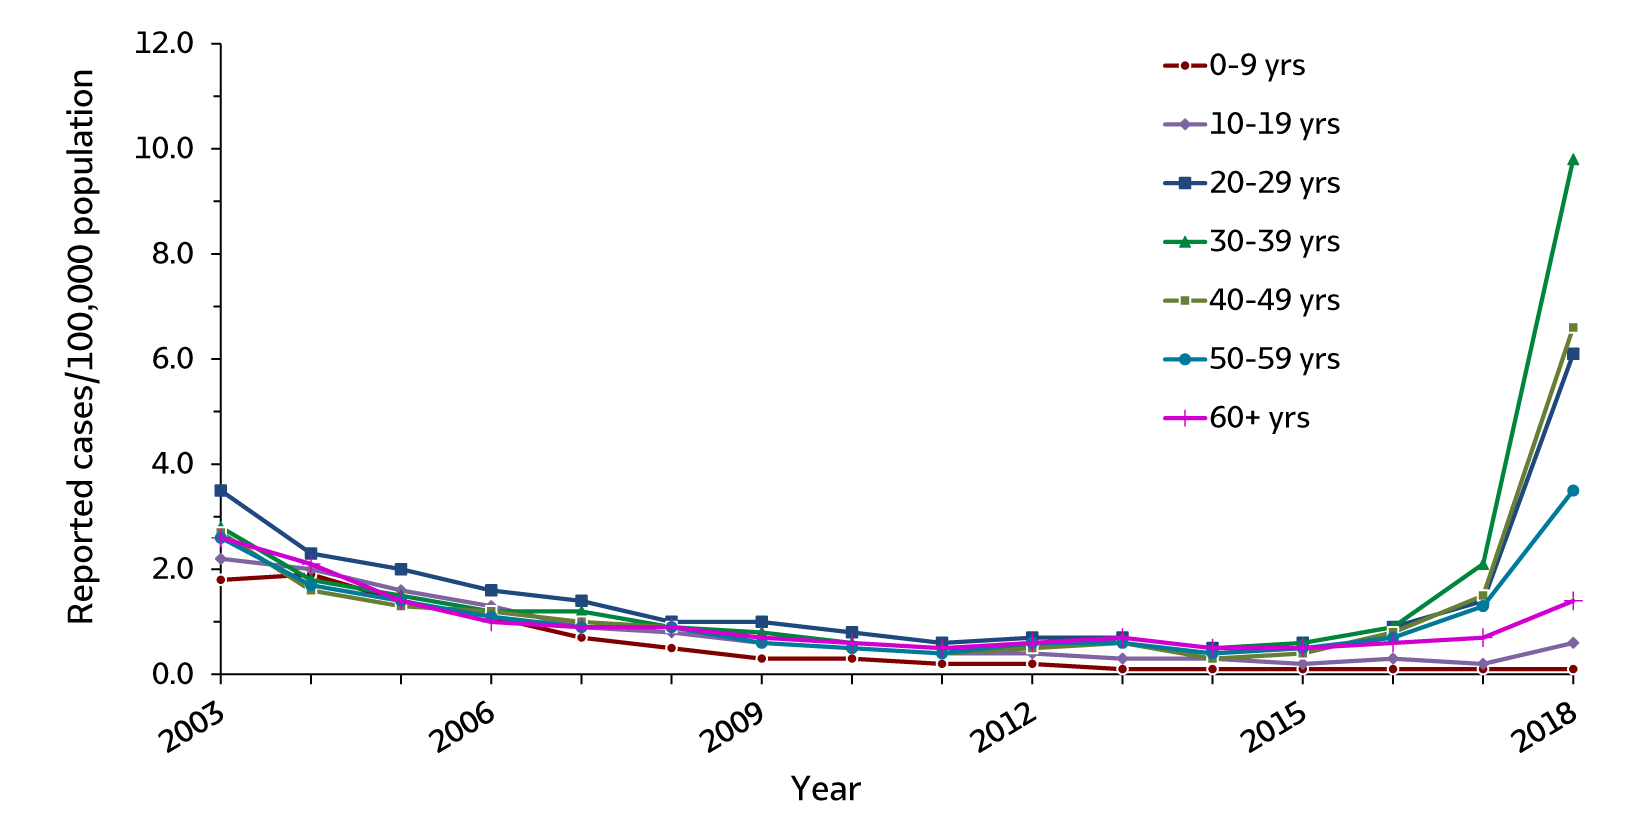 Figure 1.4. This line graph shows trends in the rates of hepatitis A by age groups (0 – 9 years, 10 – 19 years, 20 – 29 years, 30 – 39 years, 40 – 49 years, 50 – 59 years, and 60 years and older) for 2003 through 2018. For all age groups the reported rates of hepatitis A declined from 2003 through 2009, remained stable from 2009 through 2015, and increased from 2016 through 2018.  A large increase occurred between 2017 and 2018 for persons aged 20-29 years, 30-39 years, and 40-49 years. Over 55% of hepatitis A cases submitted to CDC in 2018 were among persons aged 30-49 years.